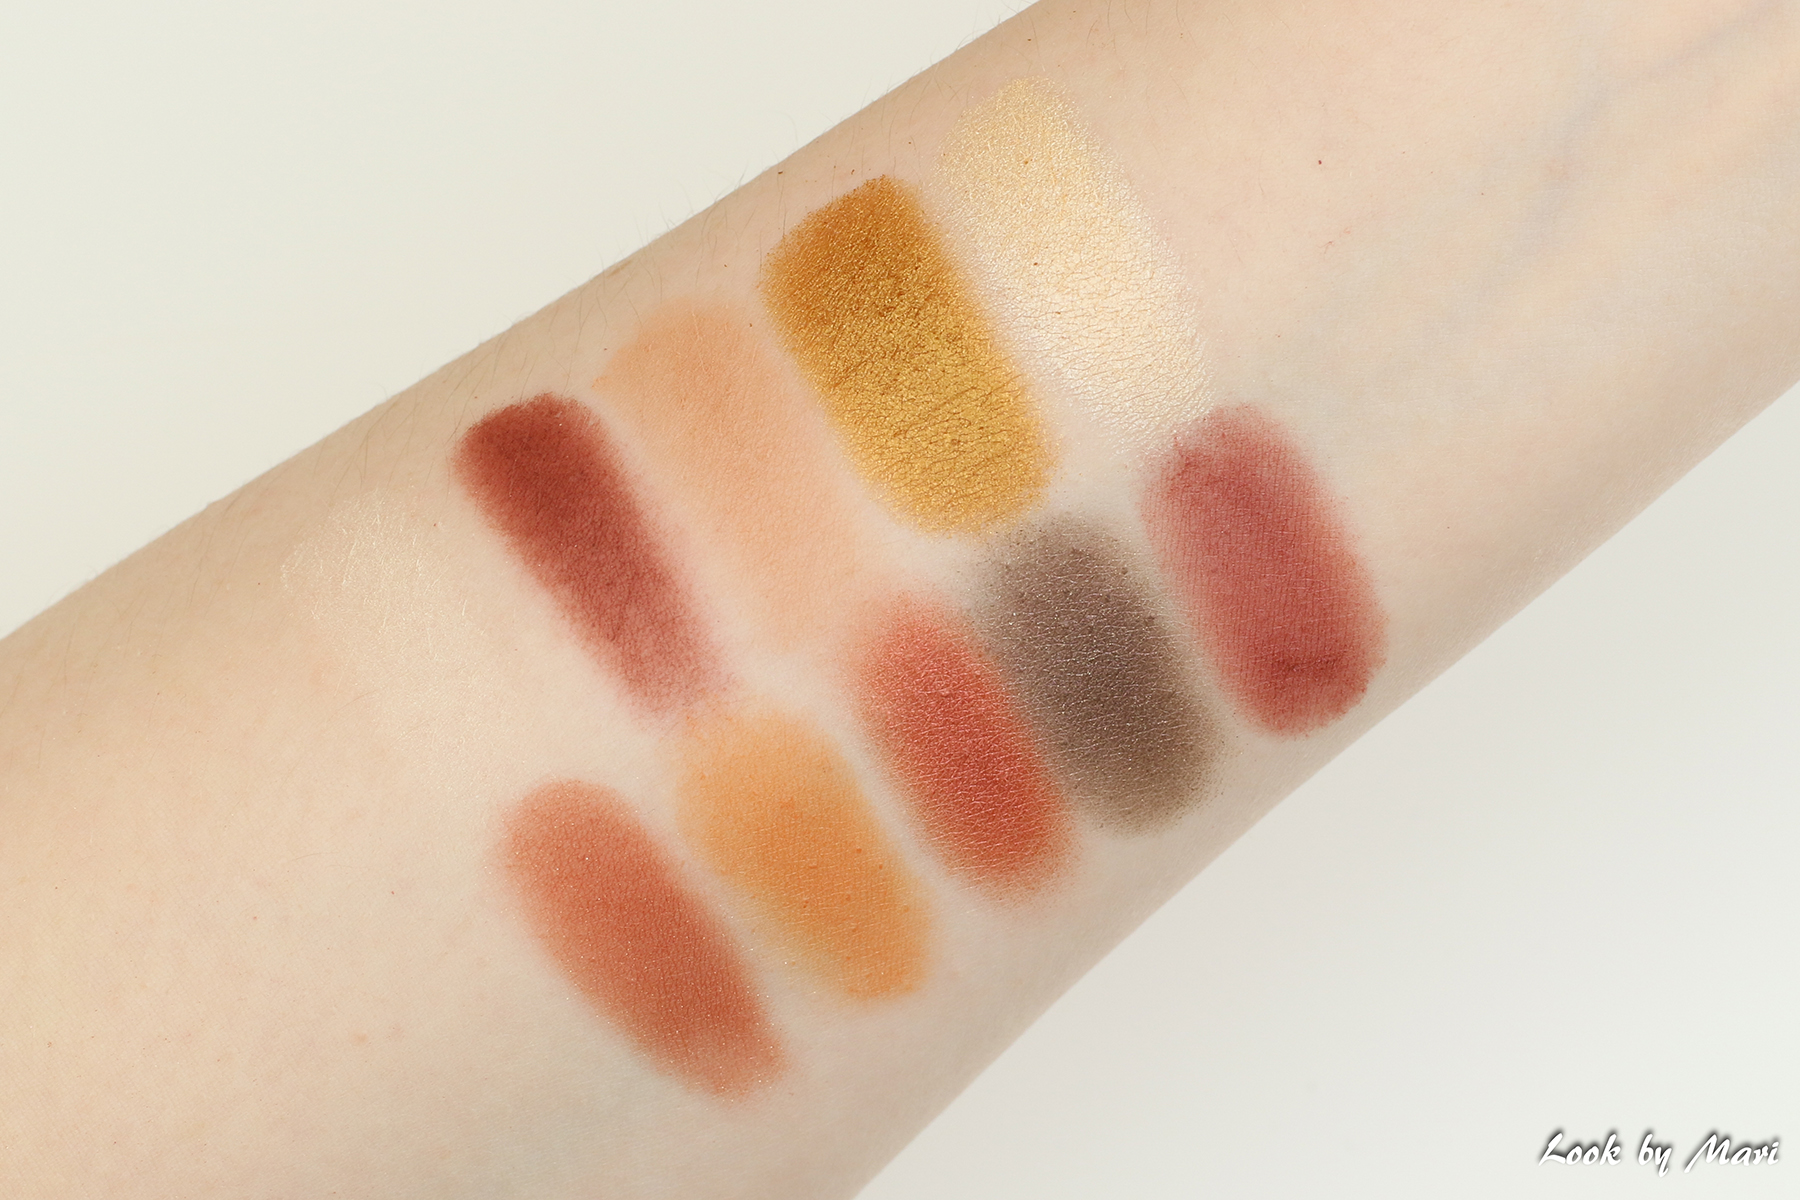 6-1 nyx perfect filter rustic antique swatches swatch sävyt kädellä värit